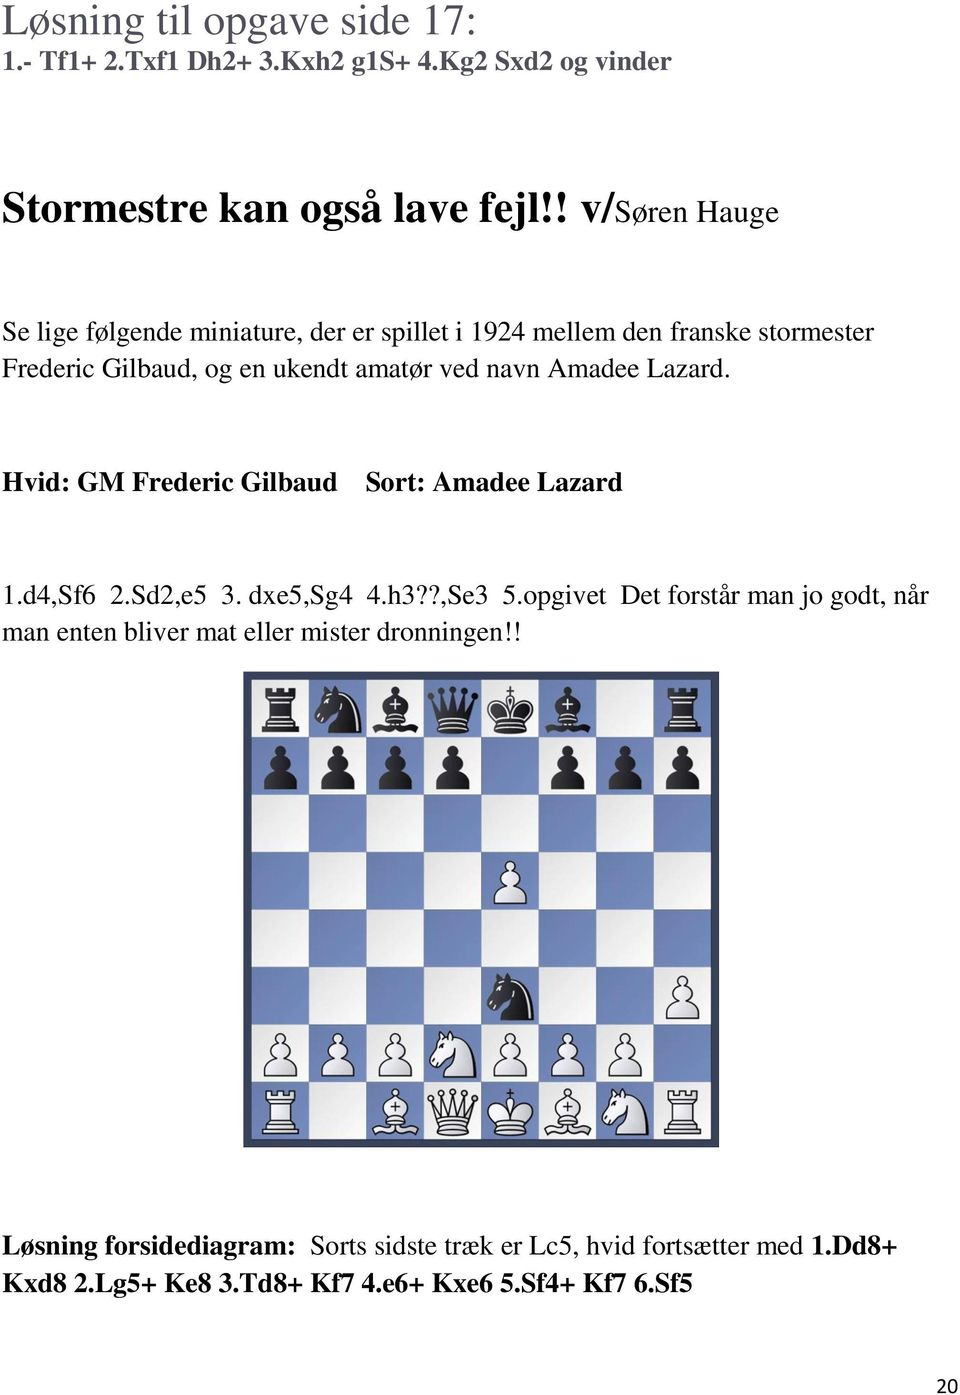 Amadee Lazard. Hvid: GM Frederic Gilbaud Sort: Amadee Lazard 1.d4,Sf6 2.Sd2,e5 3. dxe5,sg4 4.h3??,Se3 5.